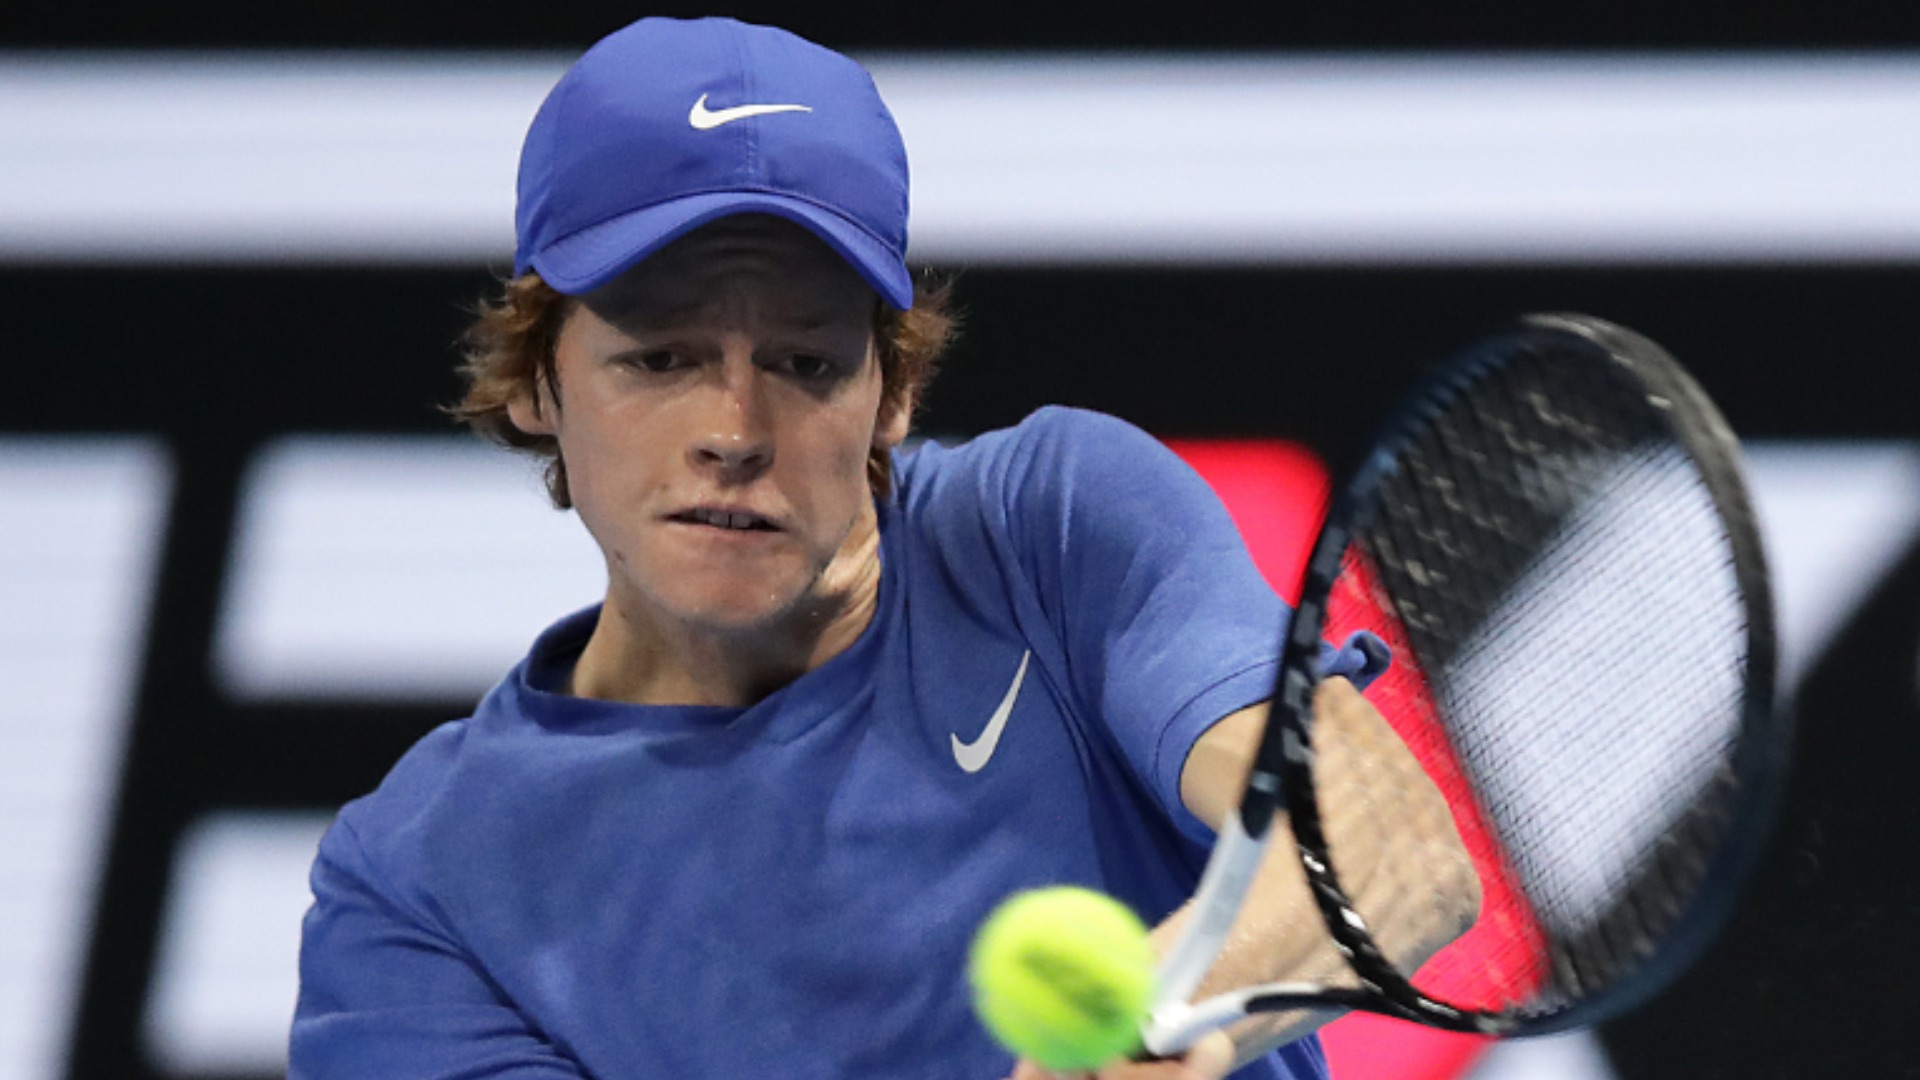 Milan hailed a popular Next Gen Finals champion as Jannik Sinner concluded a stunning week by downing favourite Alex De Minaur on Saturday.